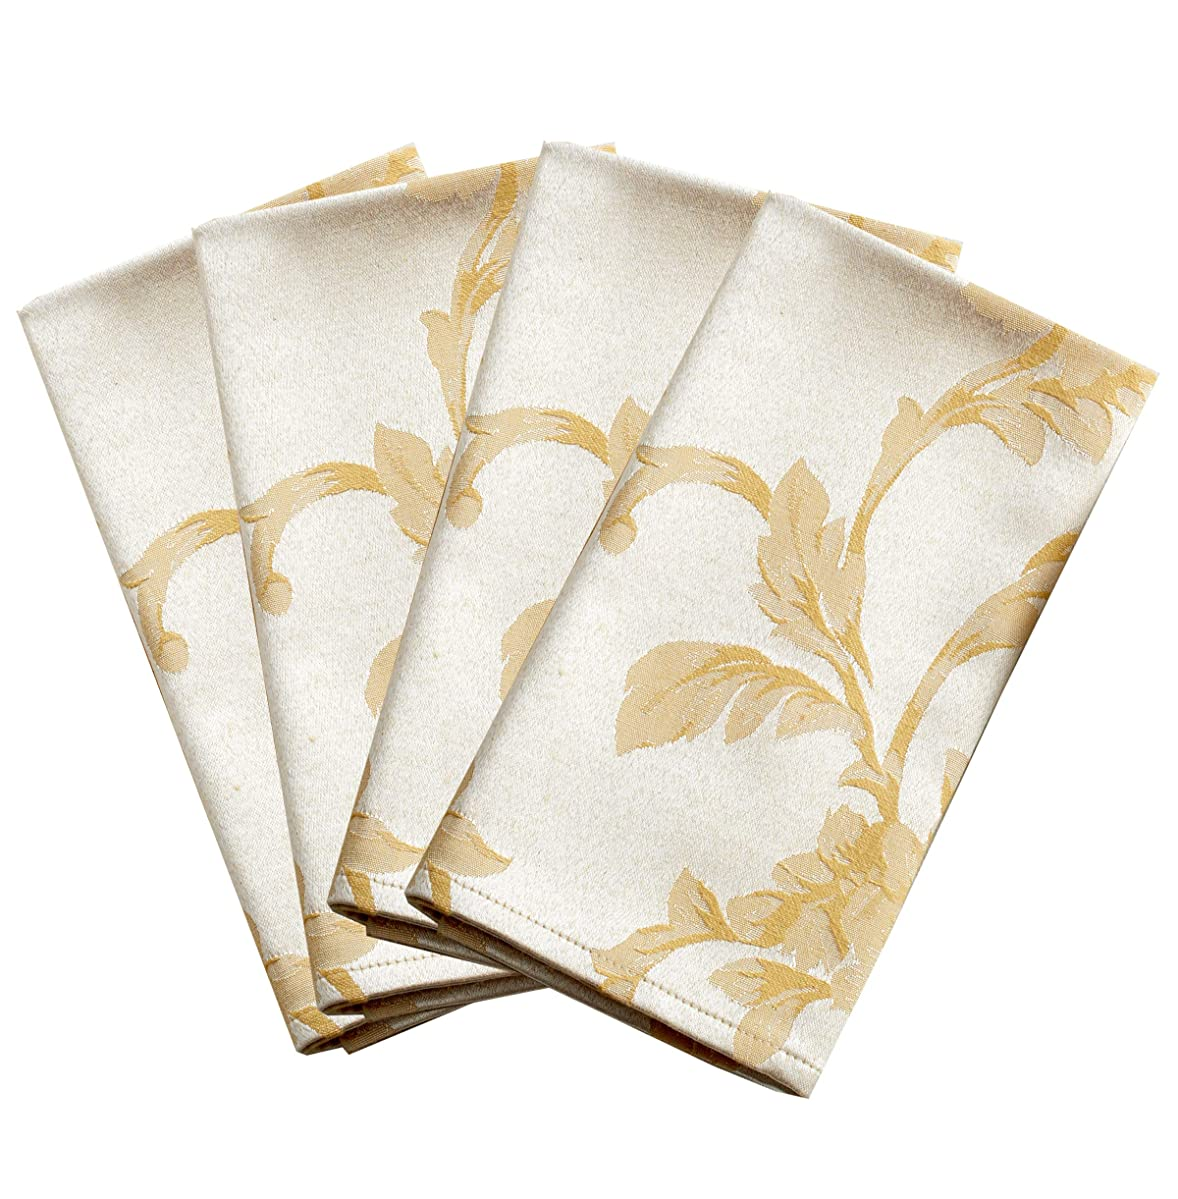 Harmony Scroll Set of 4 Napkins (Silver - Gold, 18